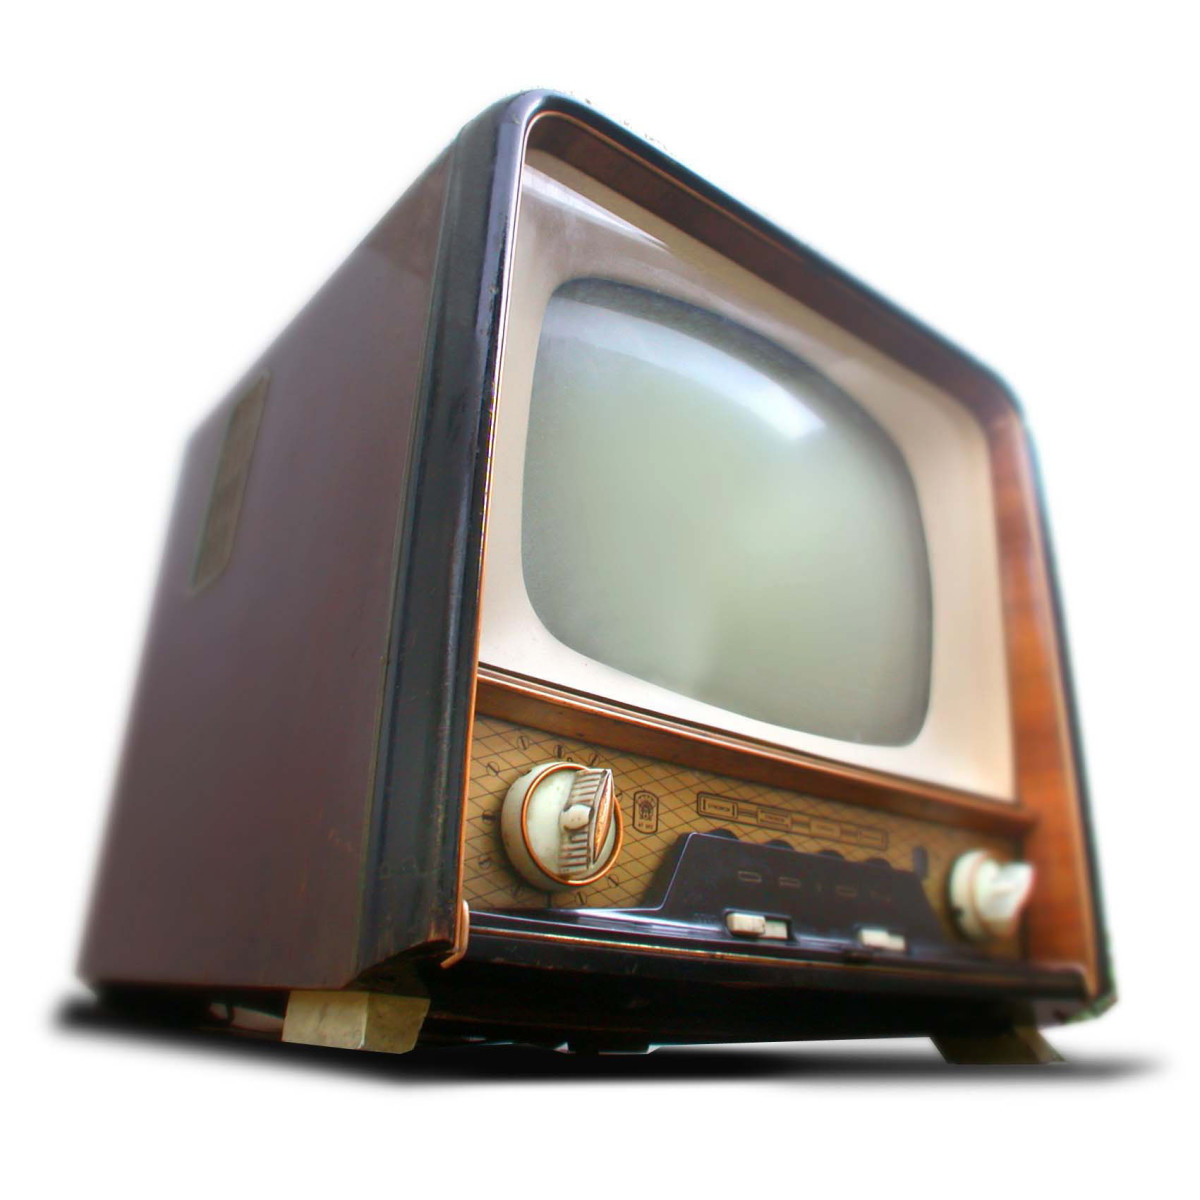 What If There Was No TV?